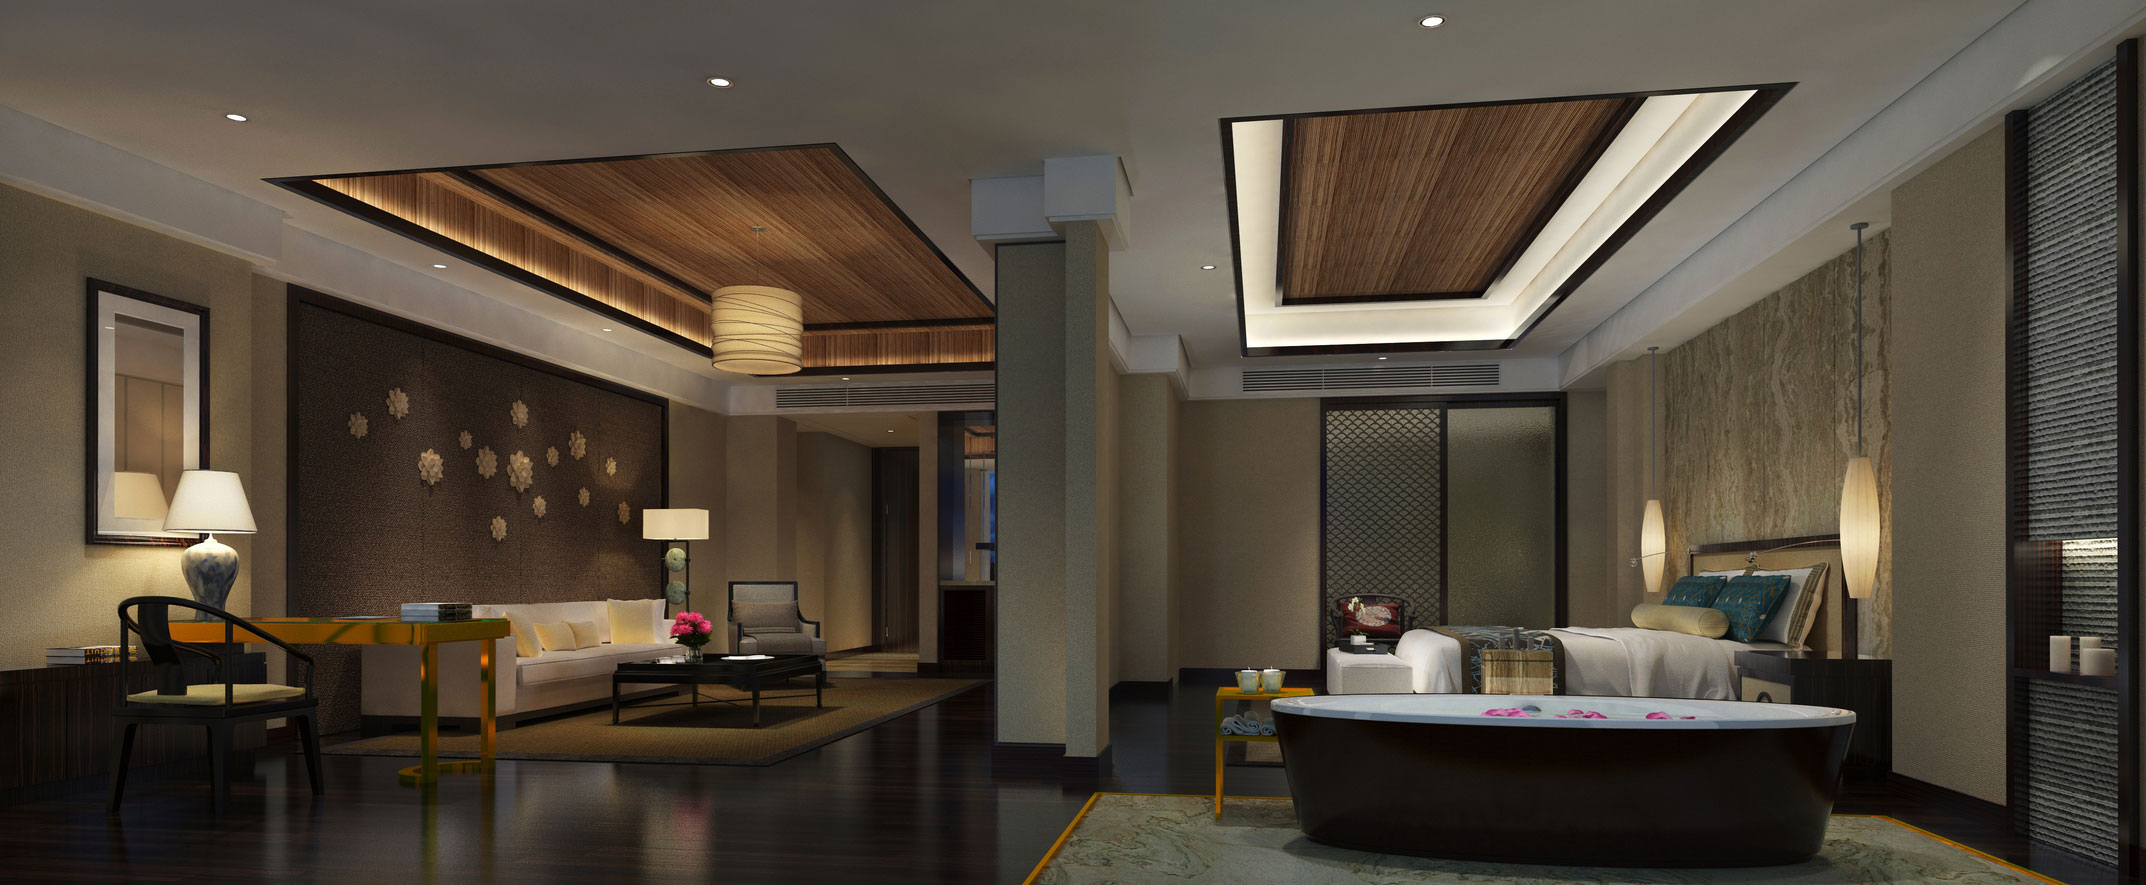 New Lifestyle Hotels Headed To Los Angeles ParkWest General - General contractor los angeles